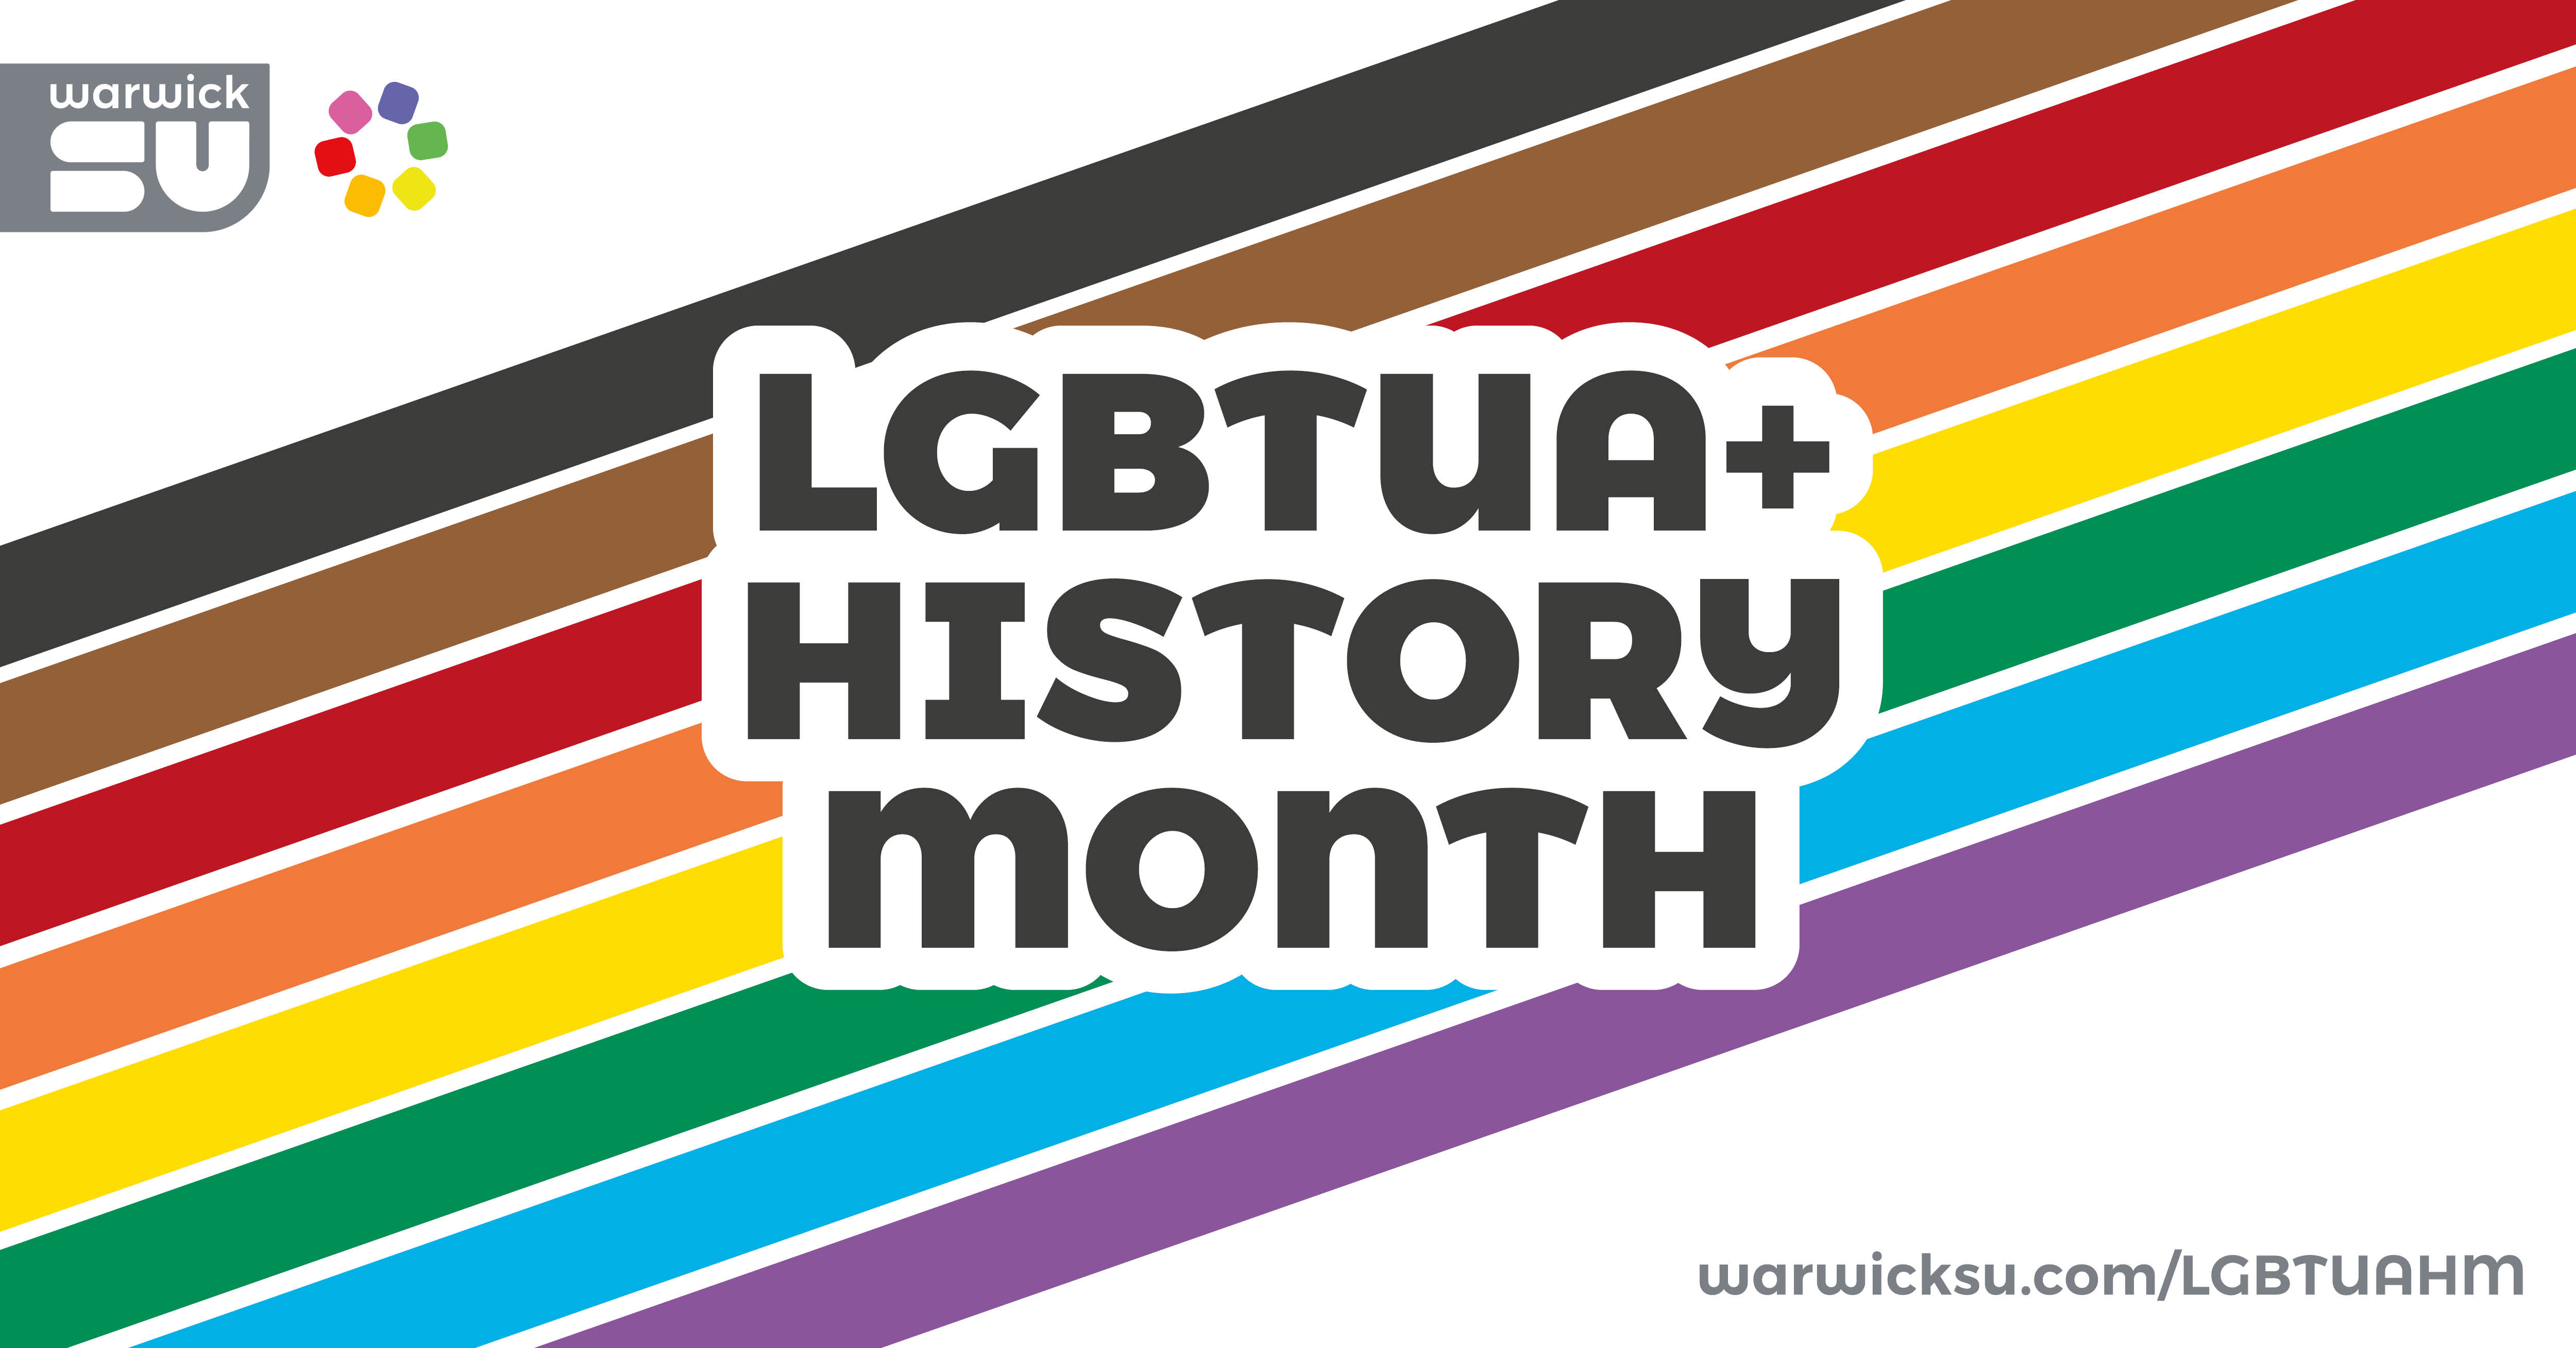 LGBTUA+ history month banner